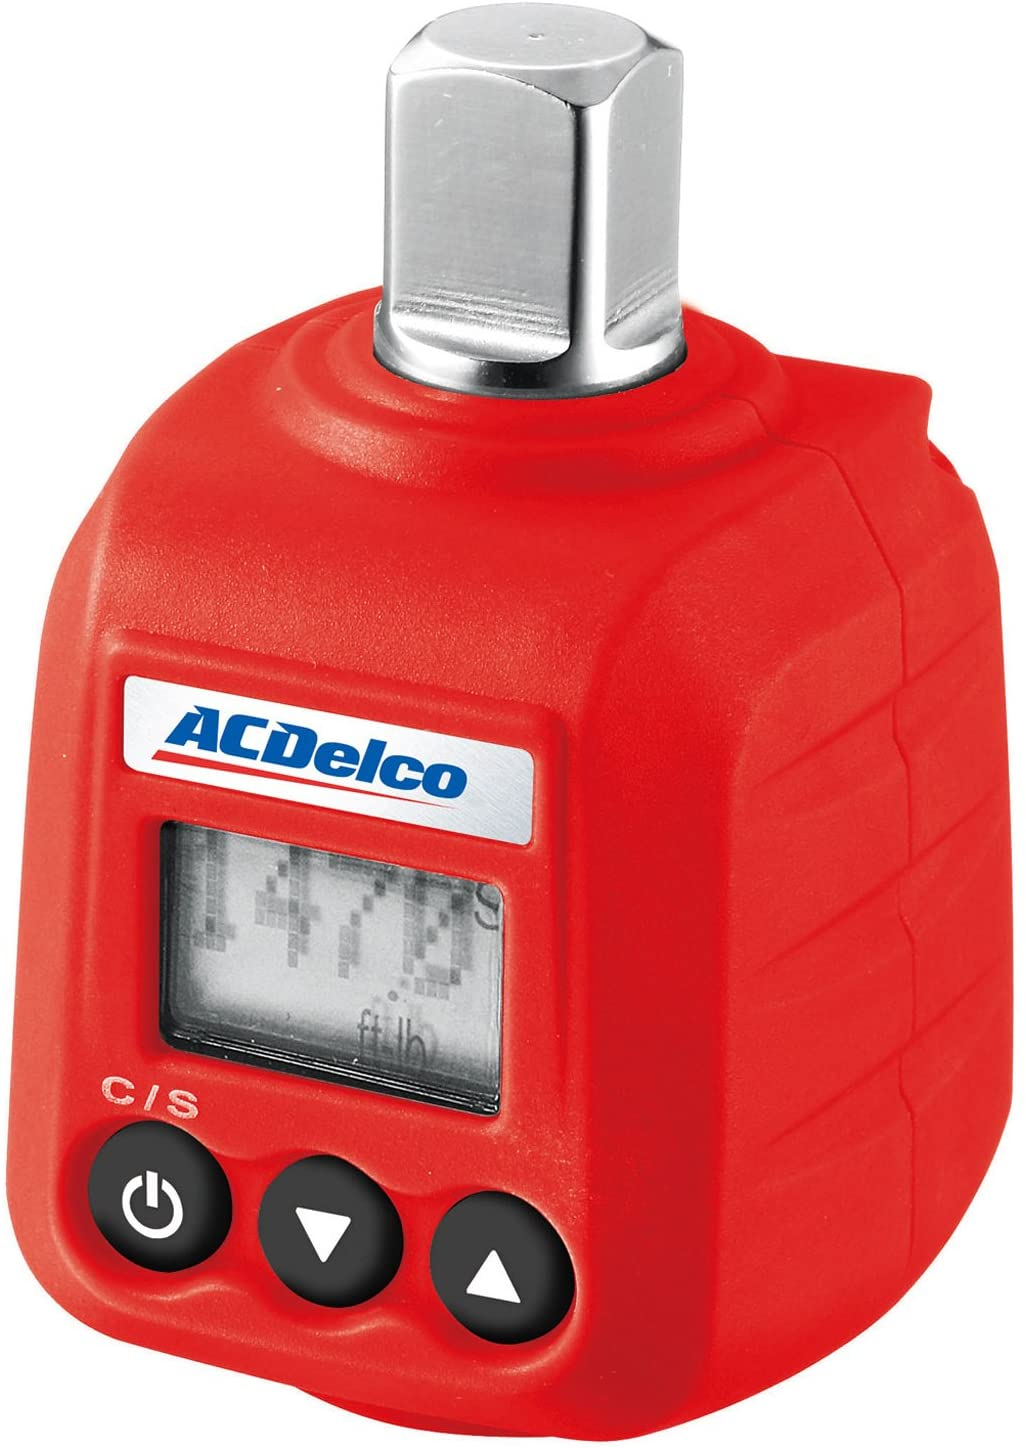 ACDelco ARM602